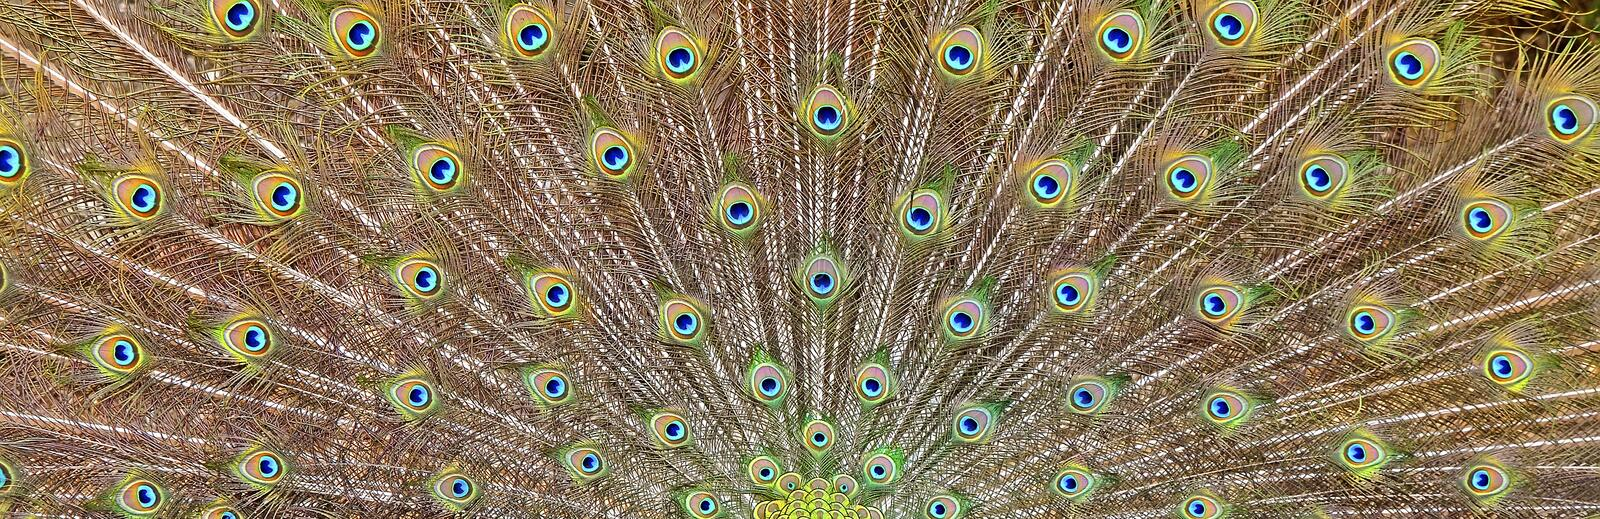 Peacocks tail. Beauty in nature royalty free stock photos